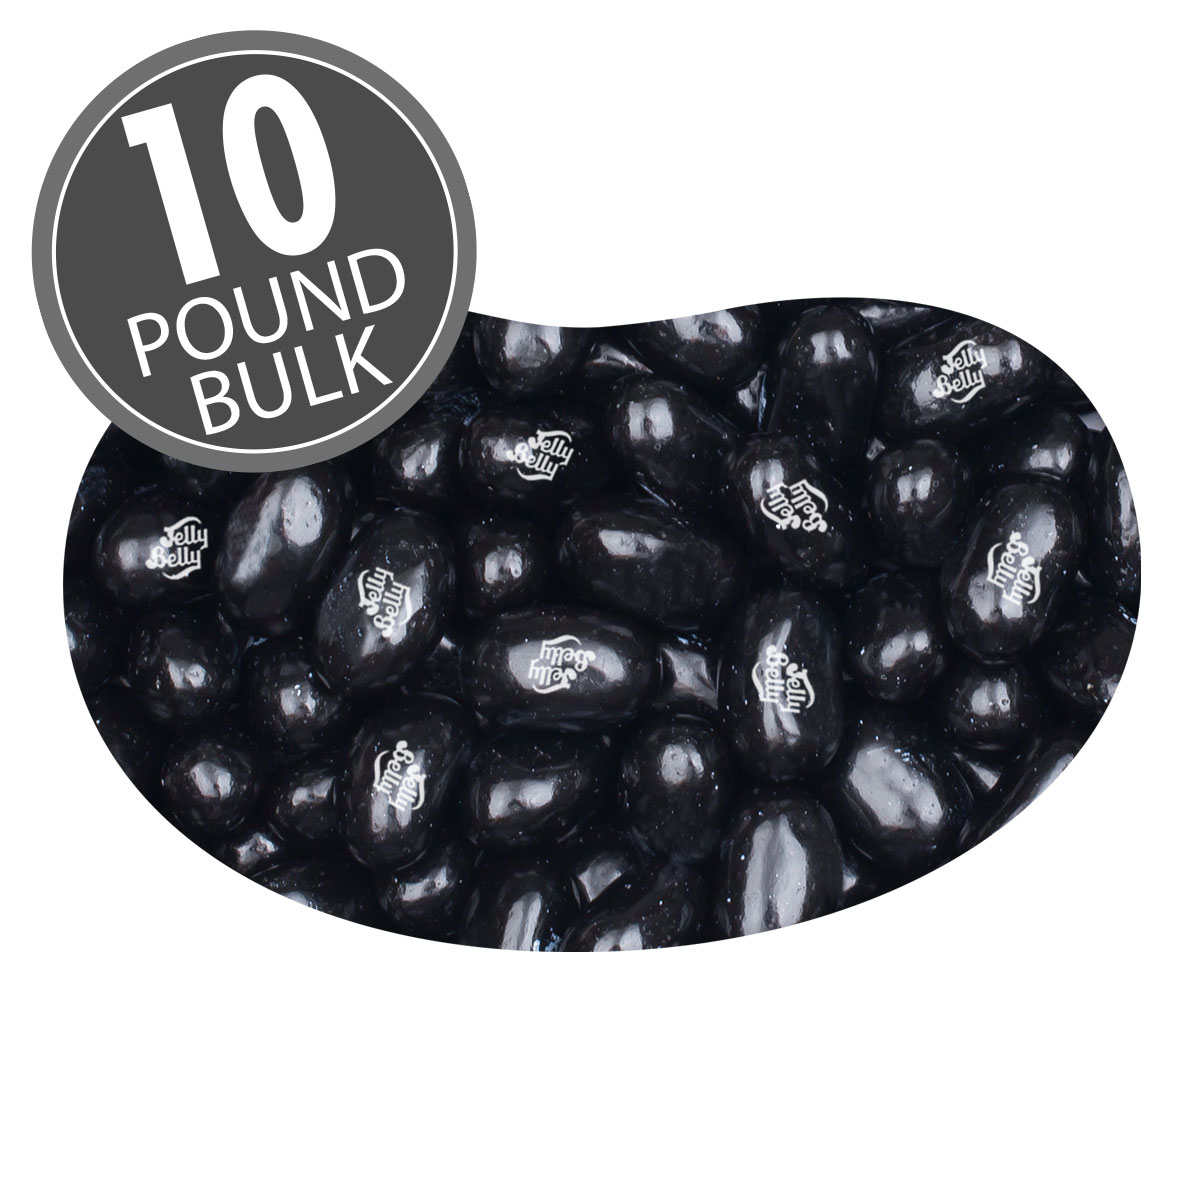 Licorice Jelly Beans - 10 lbs bulk